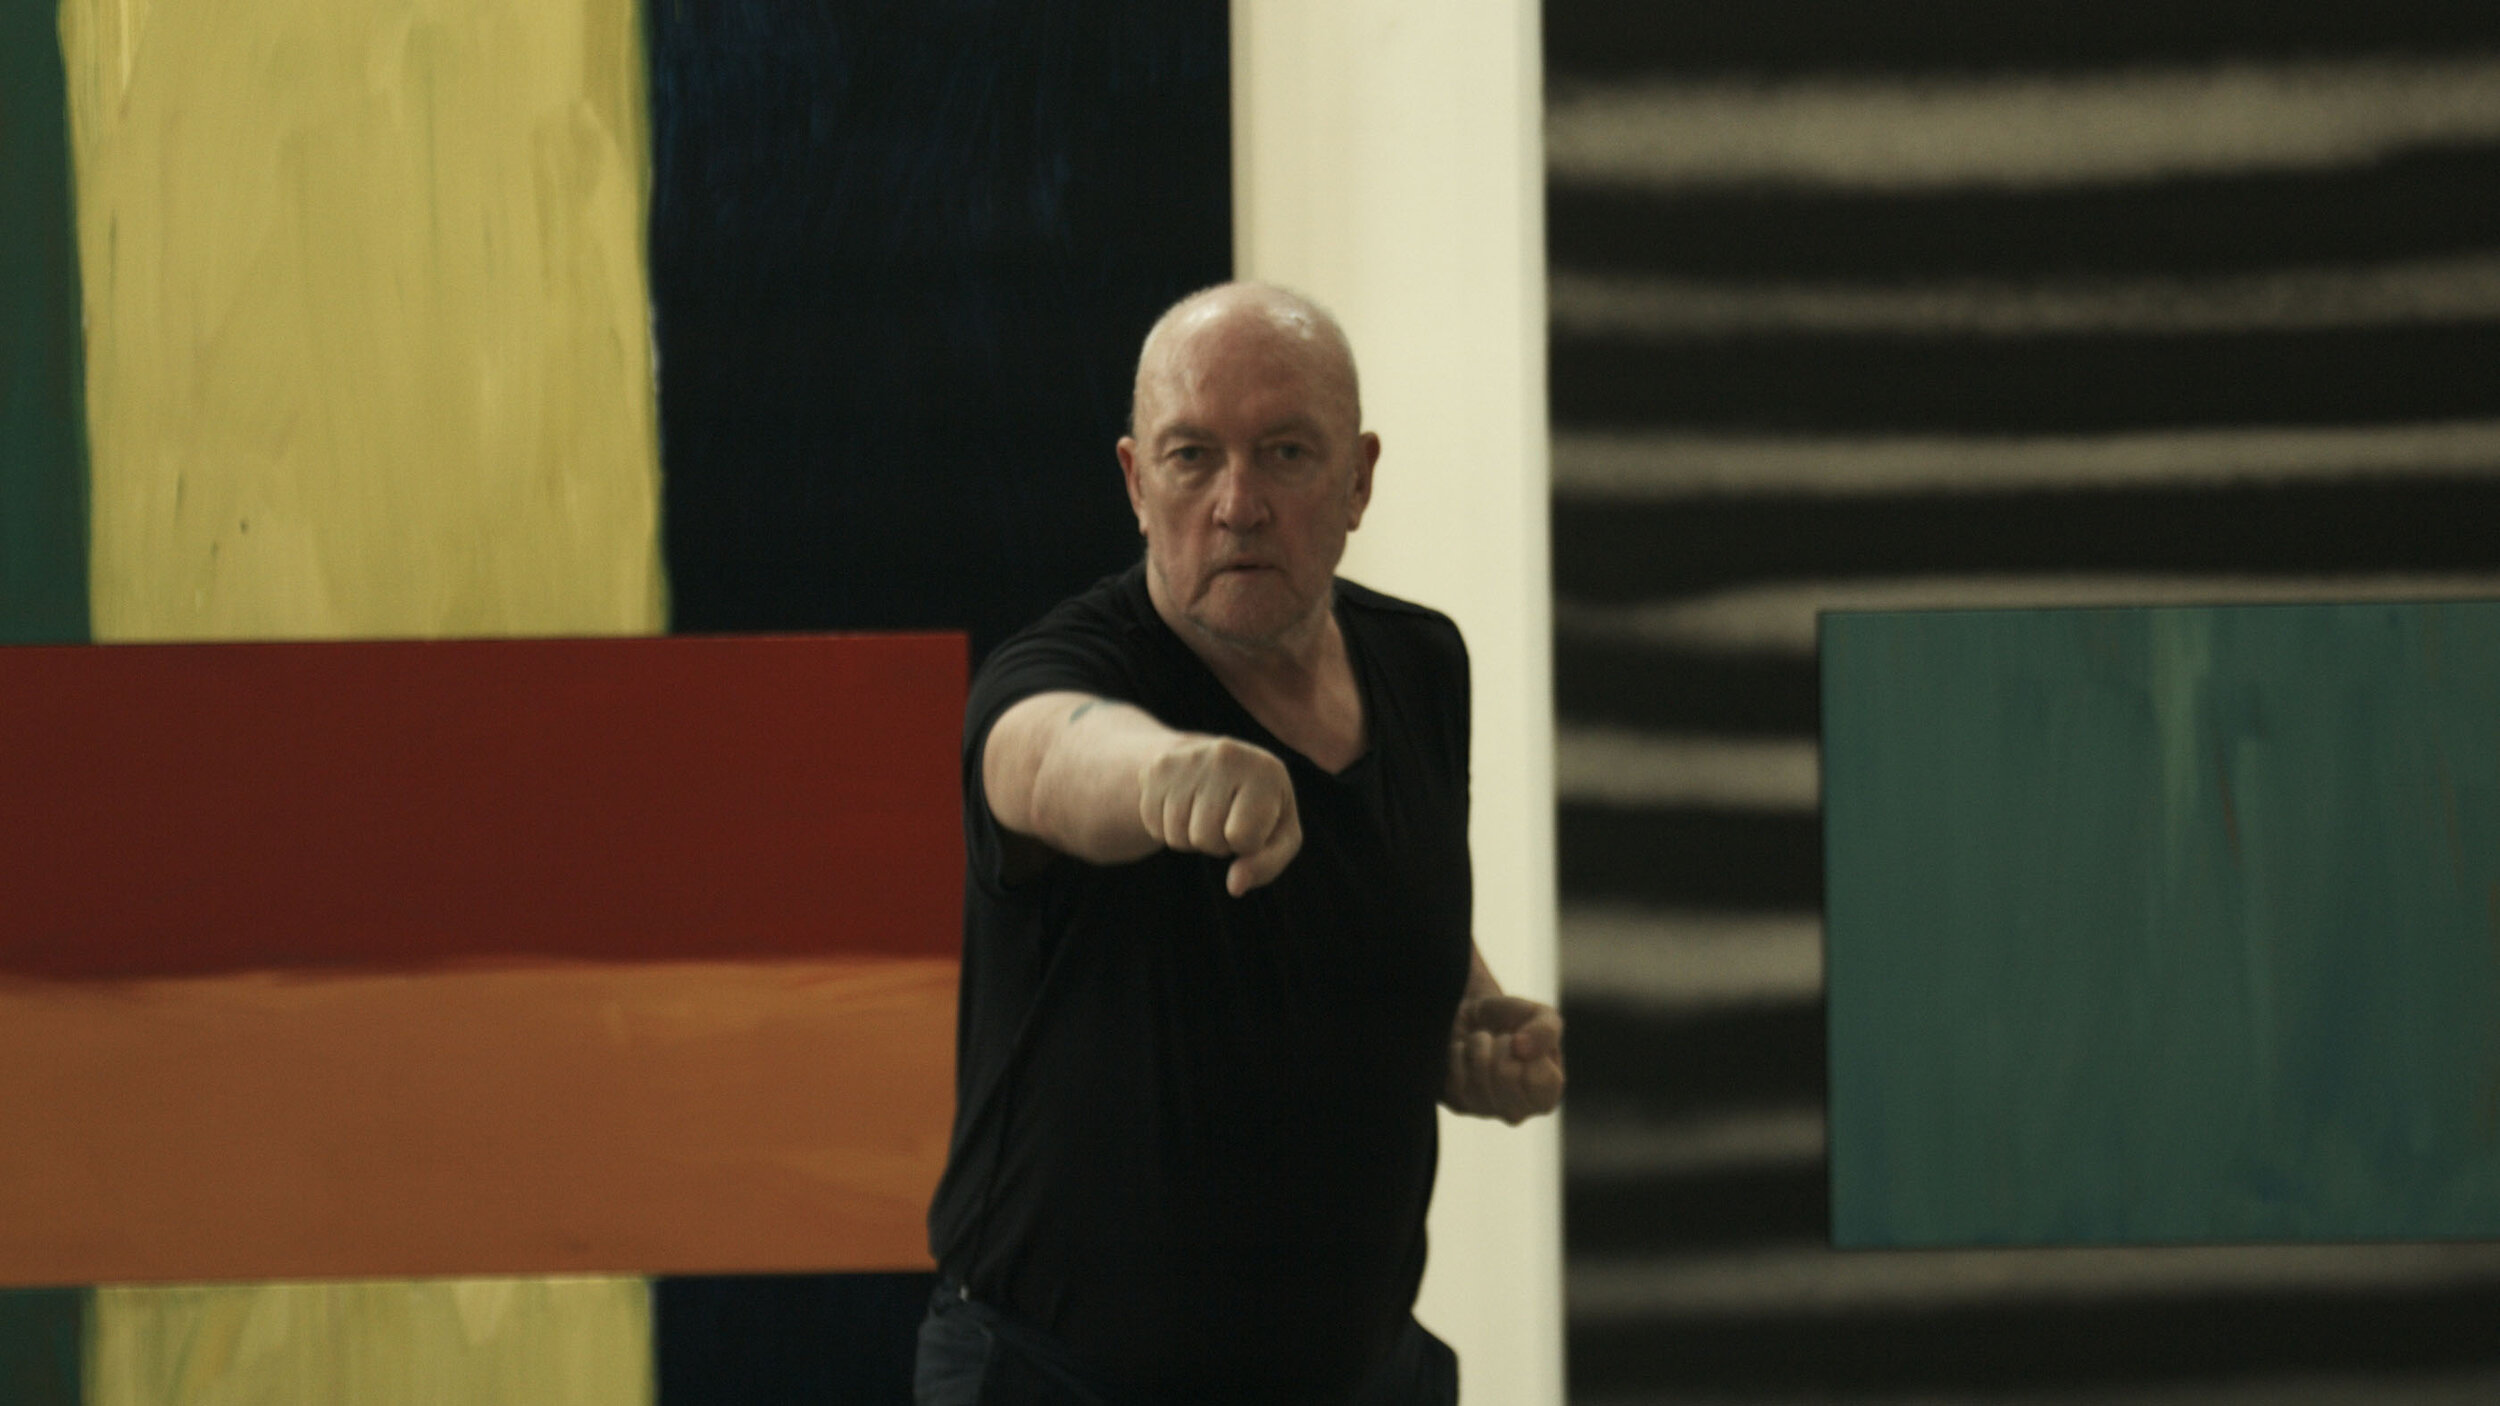 18 Sean Scully Karate workout 2 ©2018Nick Willing.jpg